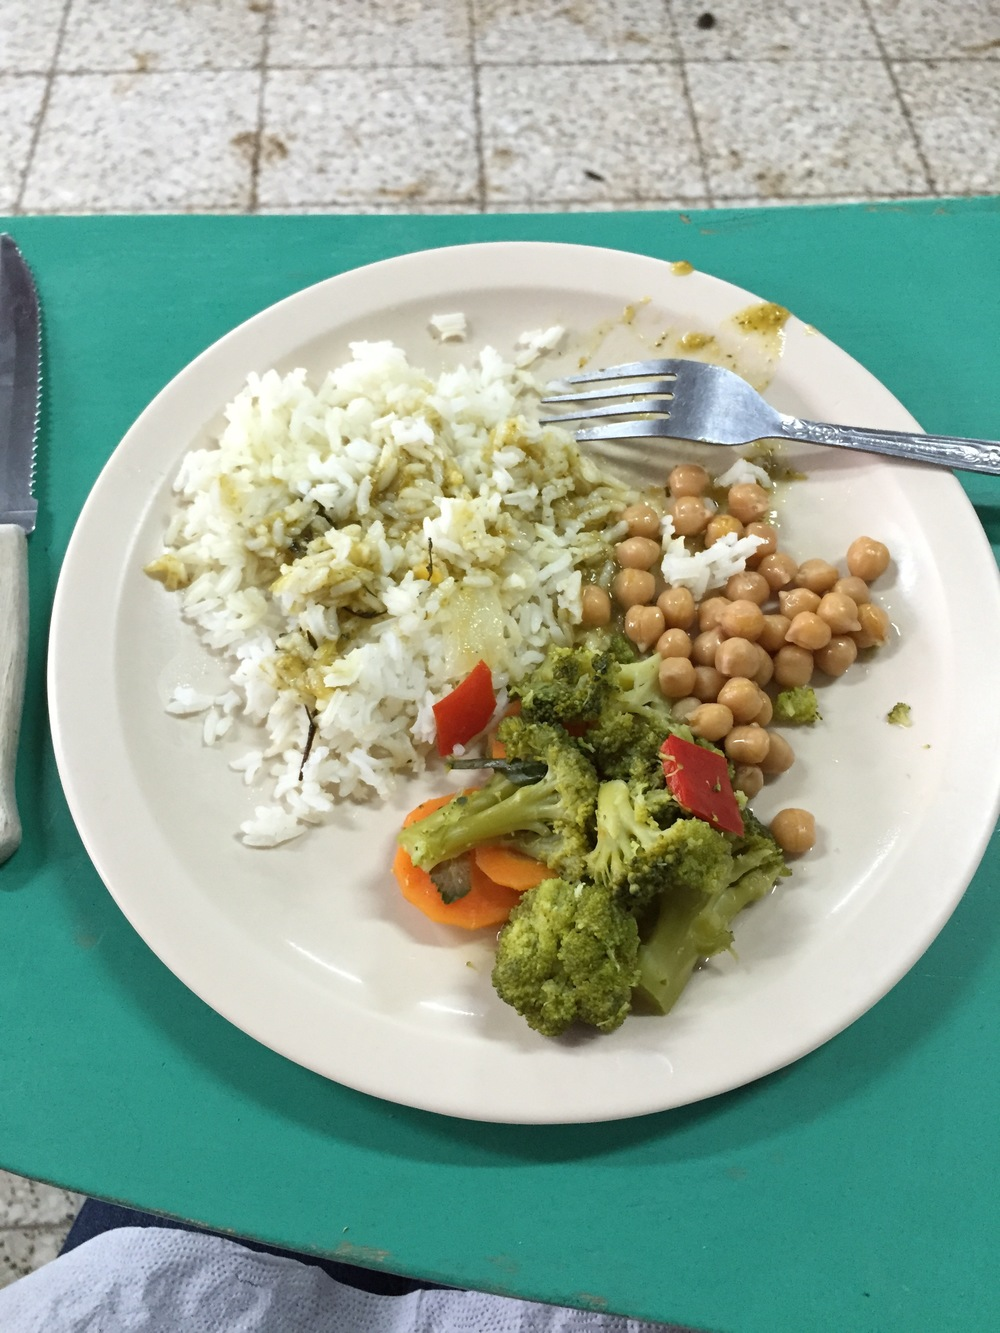 Lunch Cristy brought to the bottle school work site - Chickpeas, rice and veggies with salsa verde